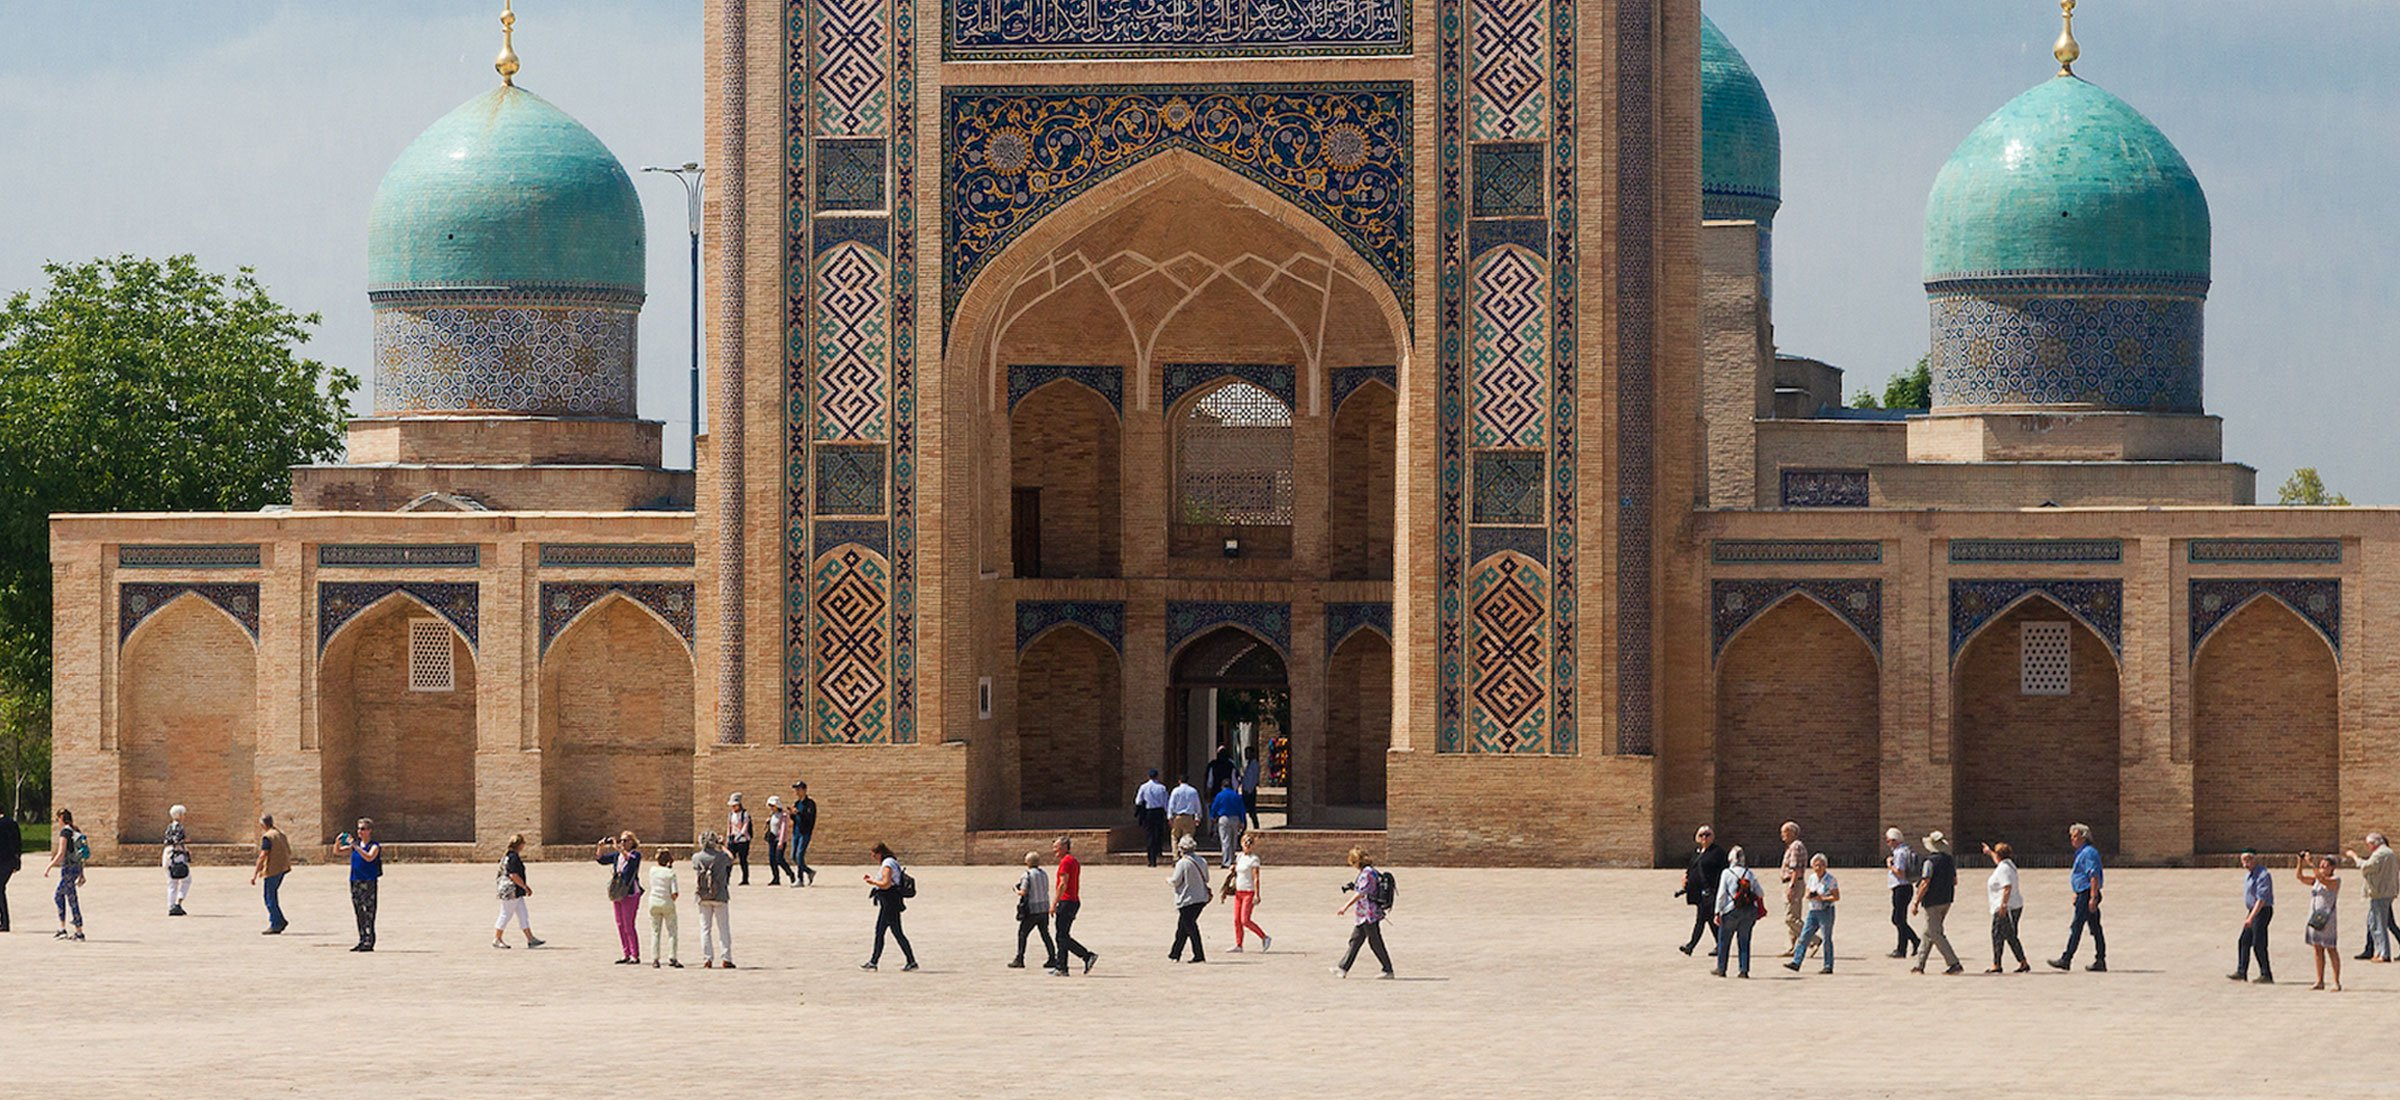 Creative Tashkent: the people and places modernising cultural heritage